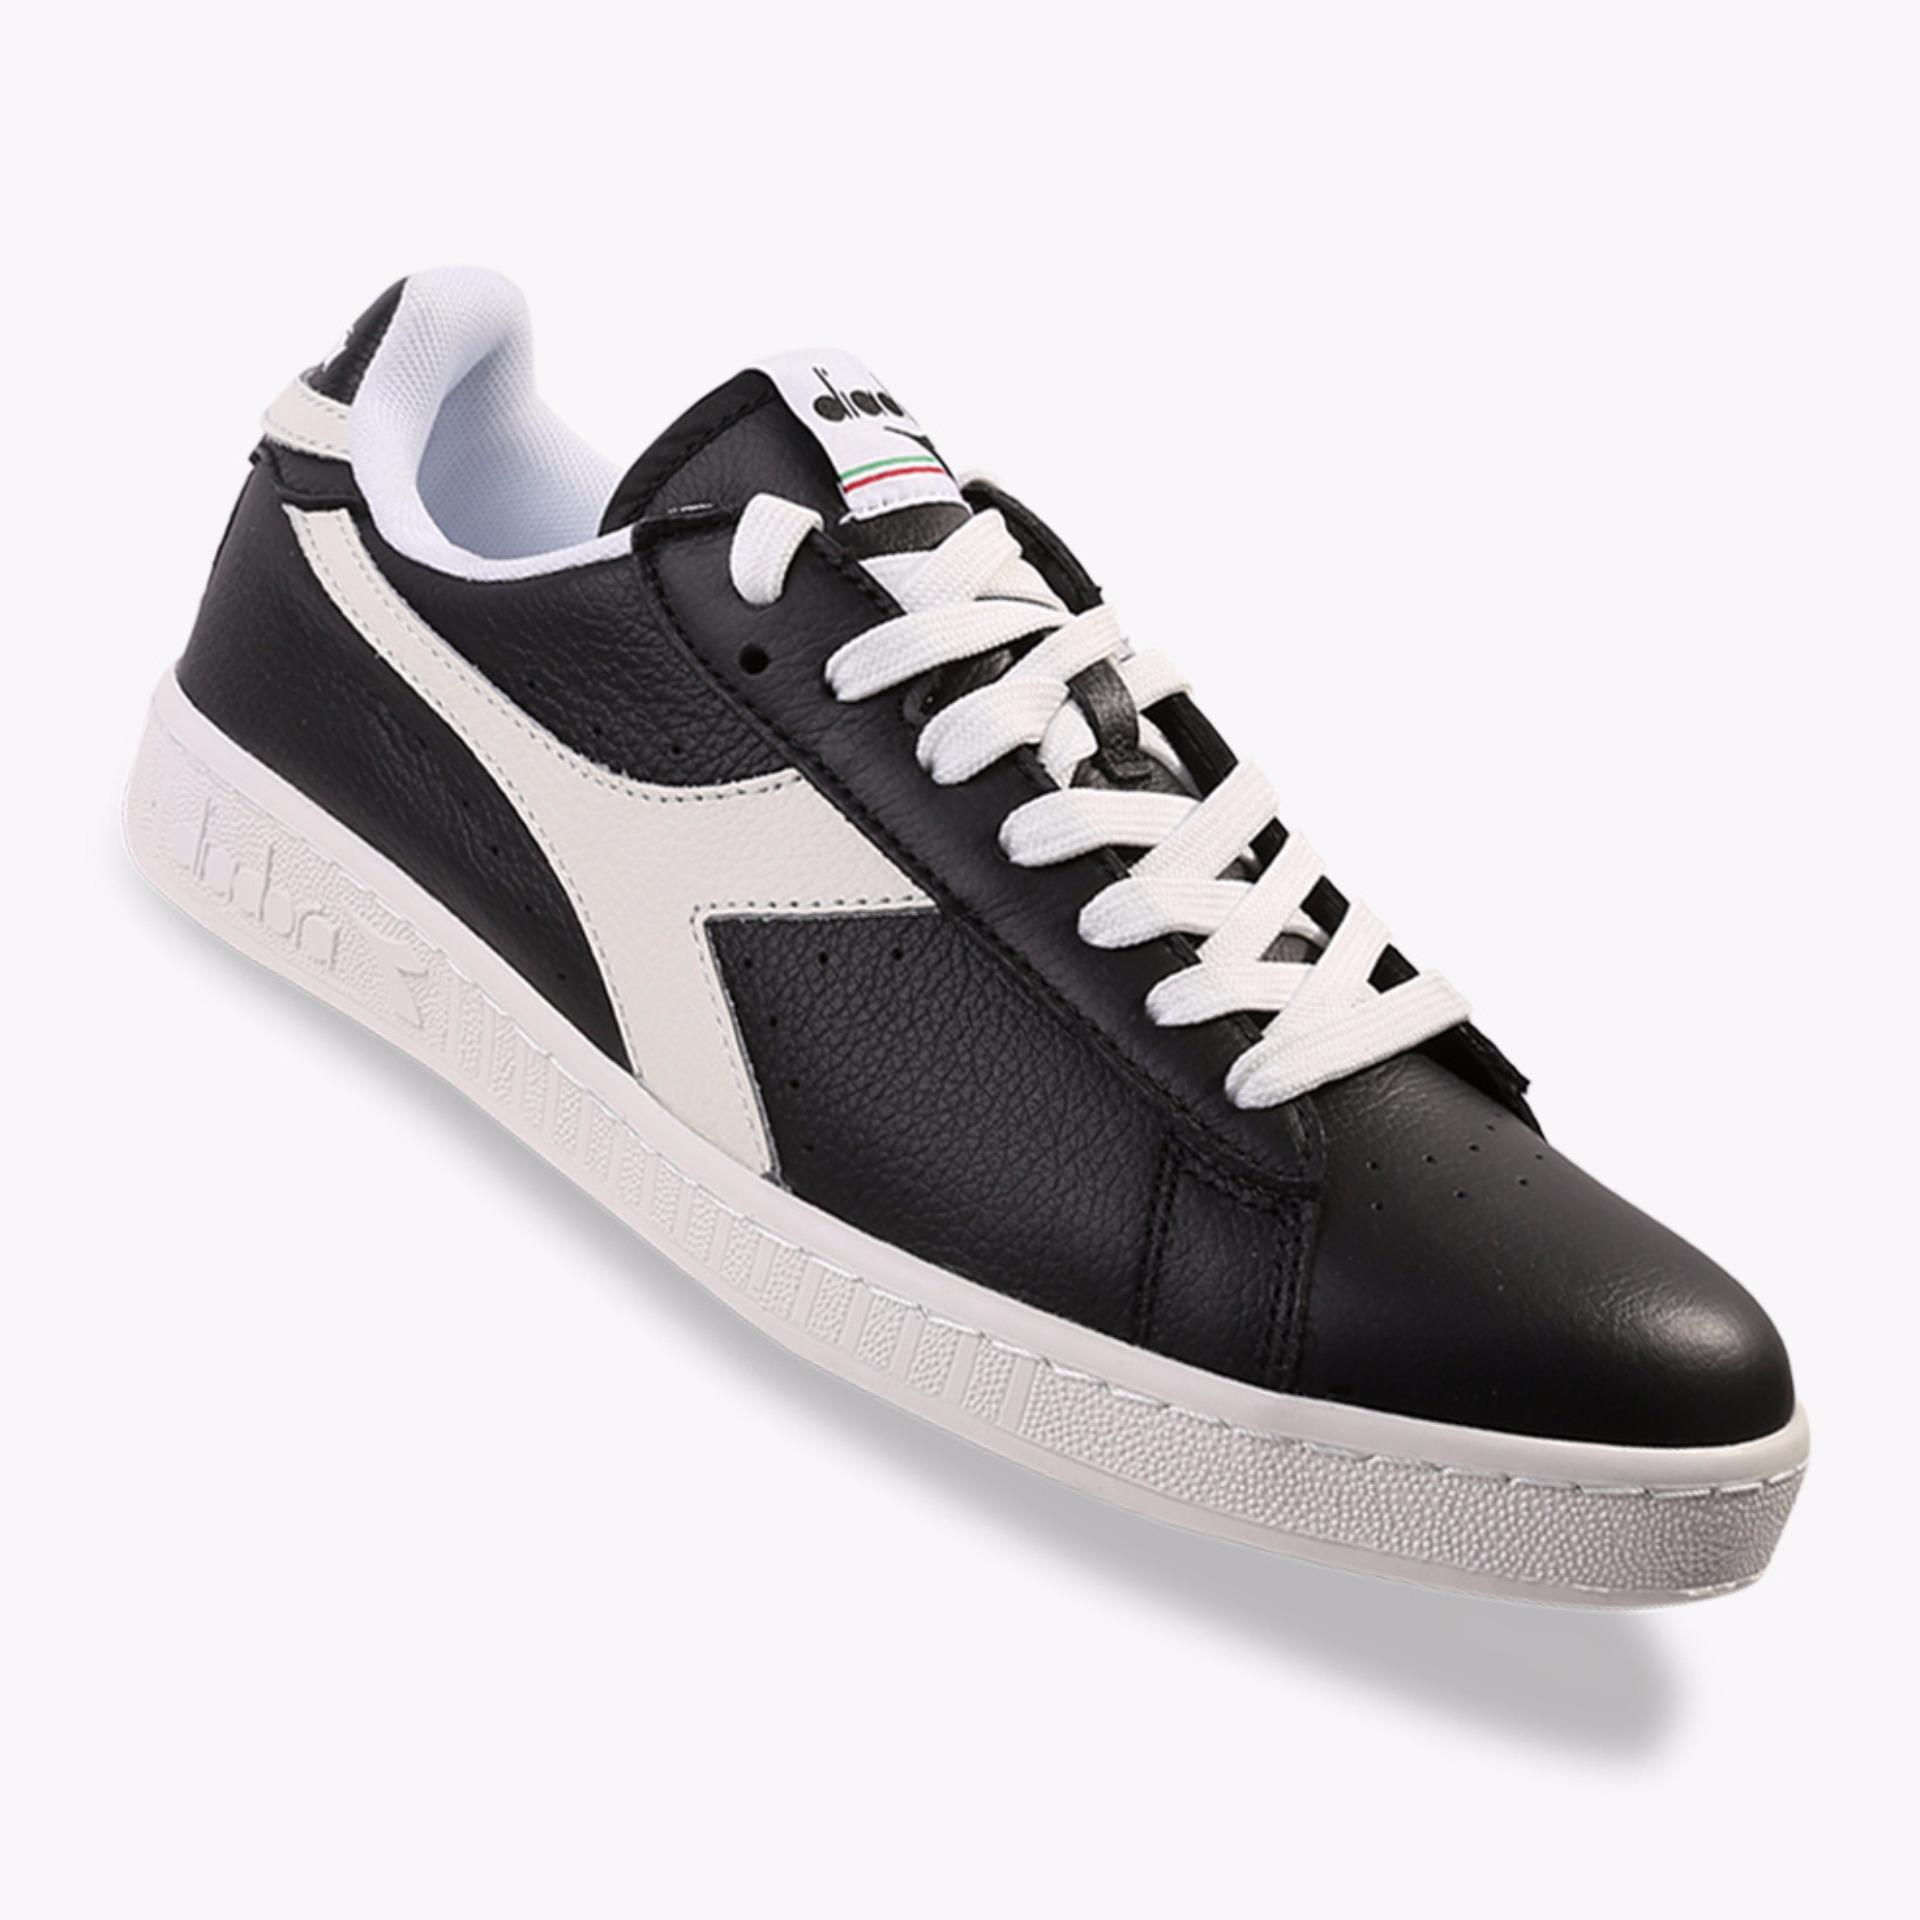 Spesifikasi Diadora Game L Low Men S Sneakers Shoes Hitam Paling Bagus